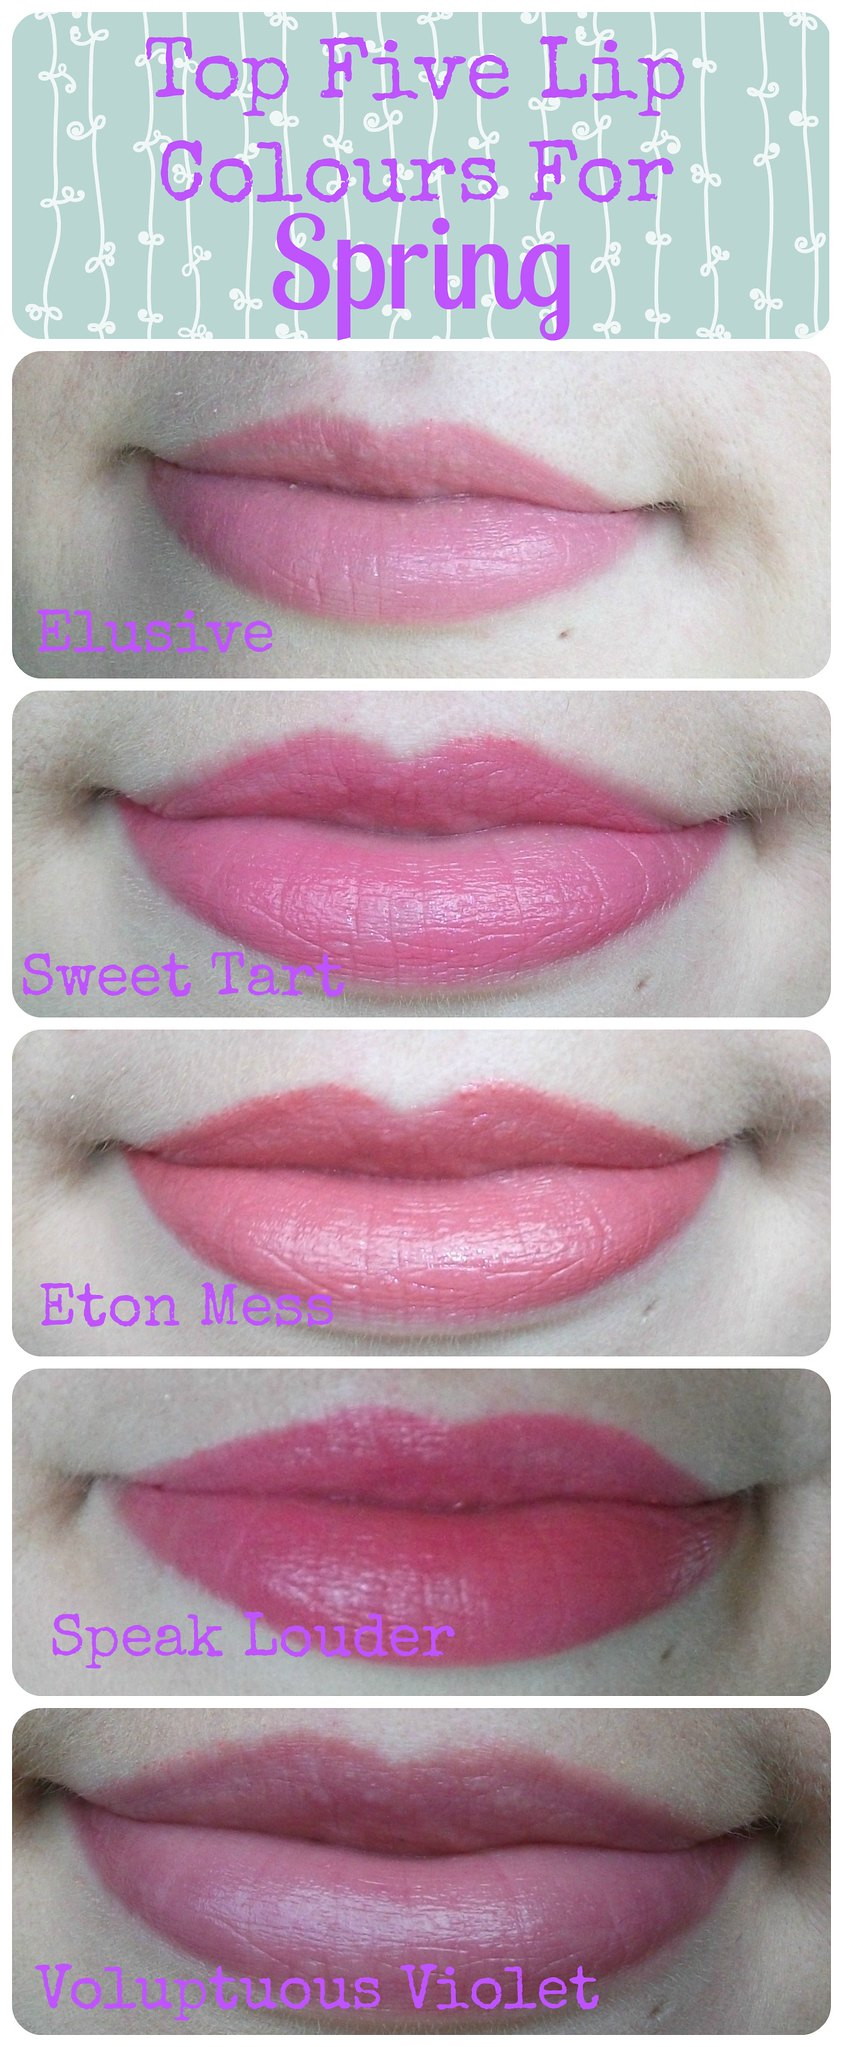 Top Five Lip Colours for Spring